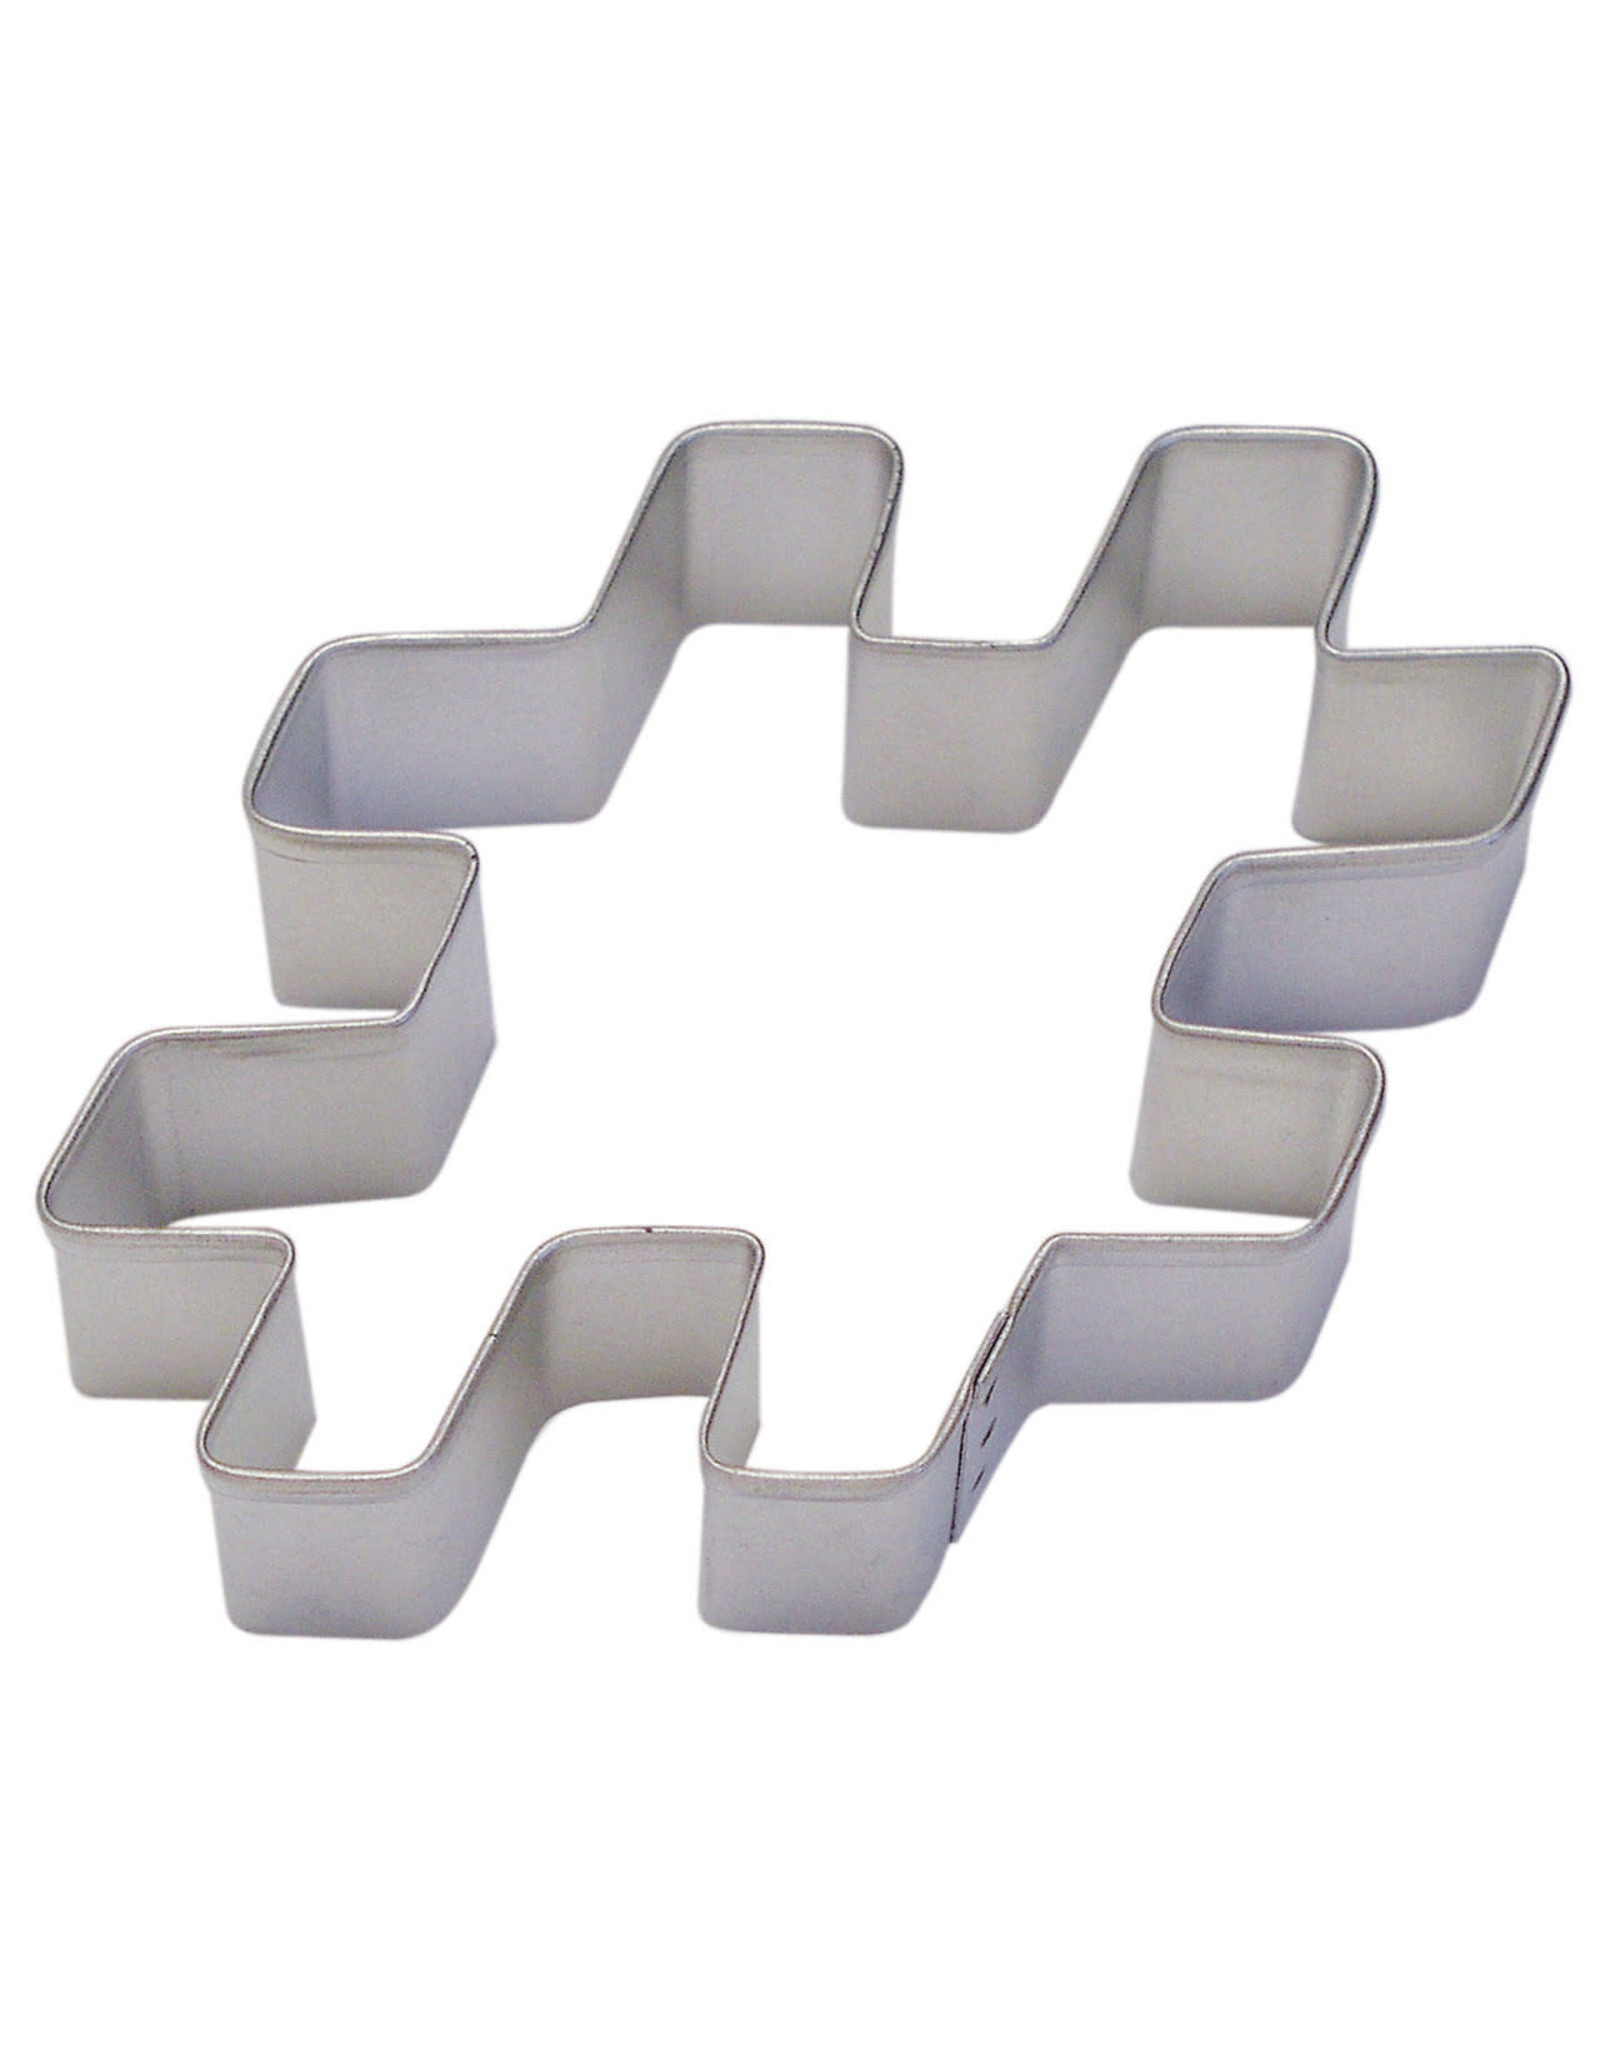 "4"" Hashtag/ Pound Cookie Cutter"